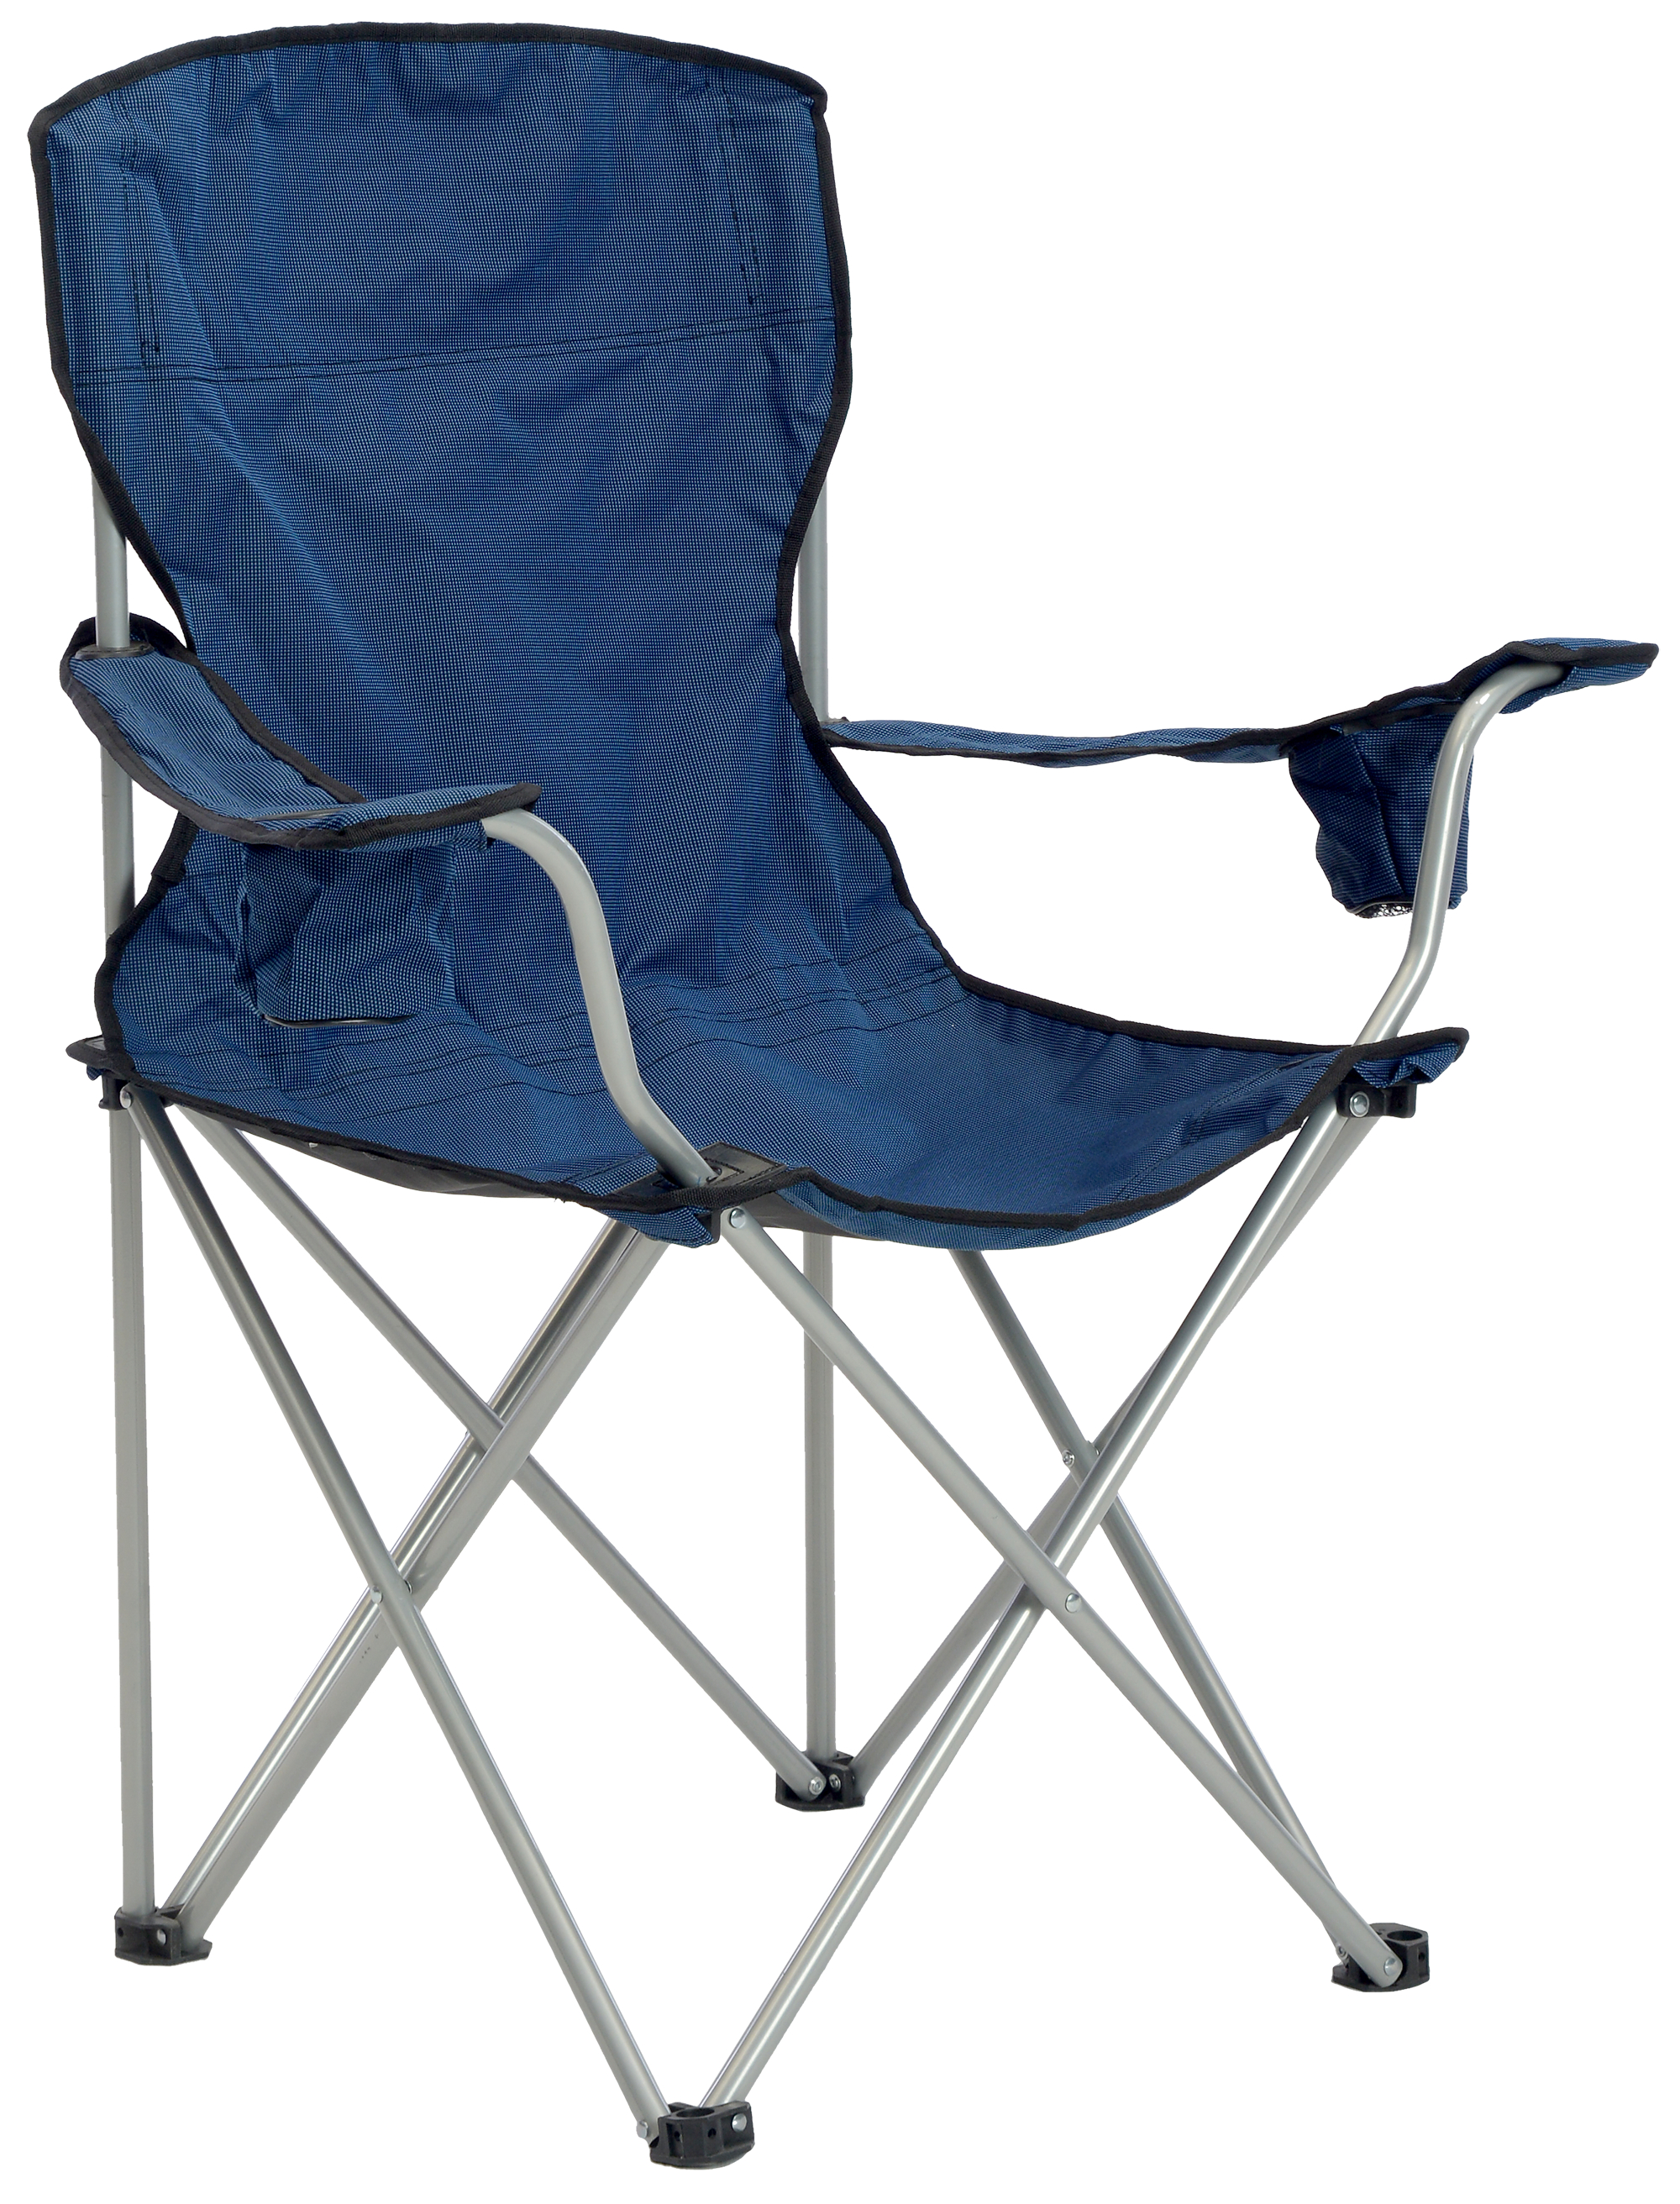 Deluxe Quad Chair, Navy/Black Fabric, Silver Frame